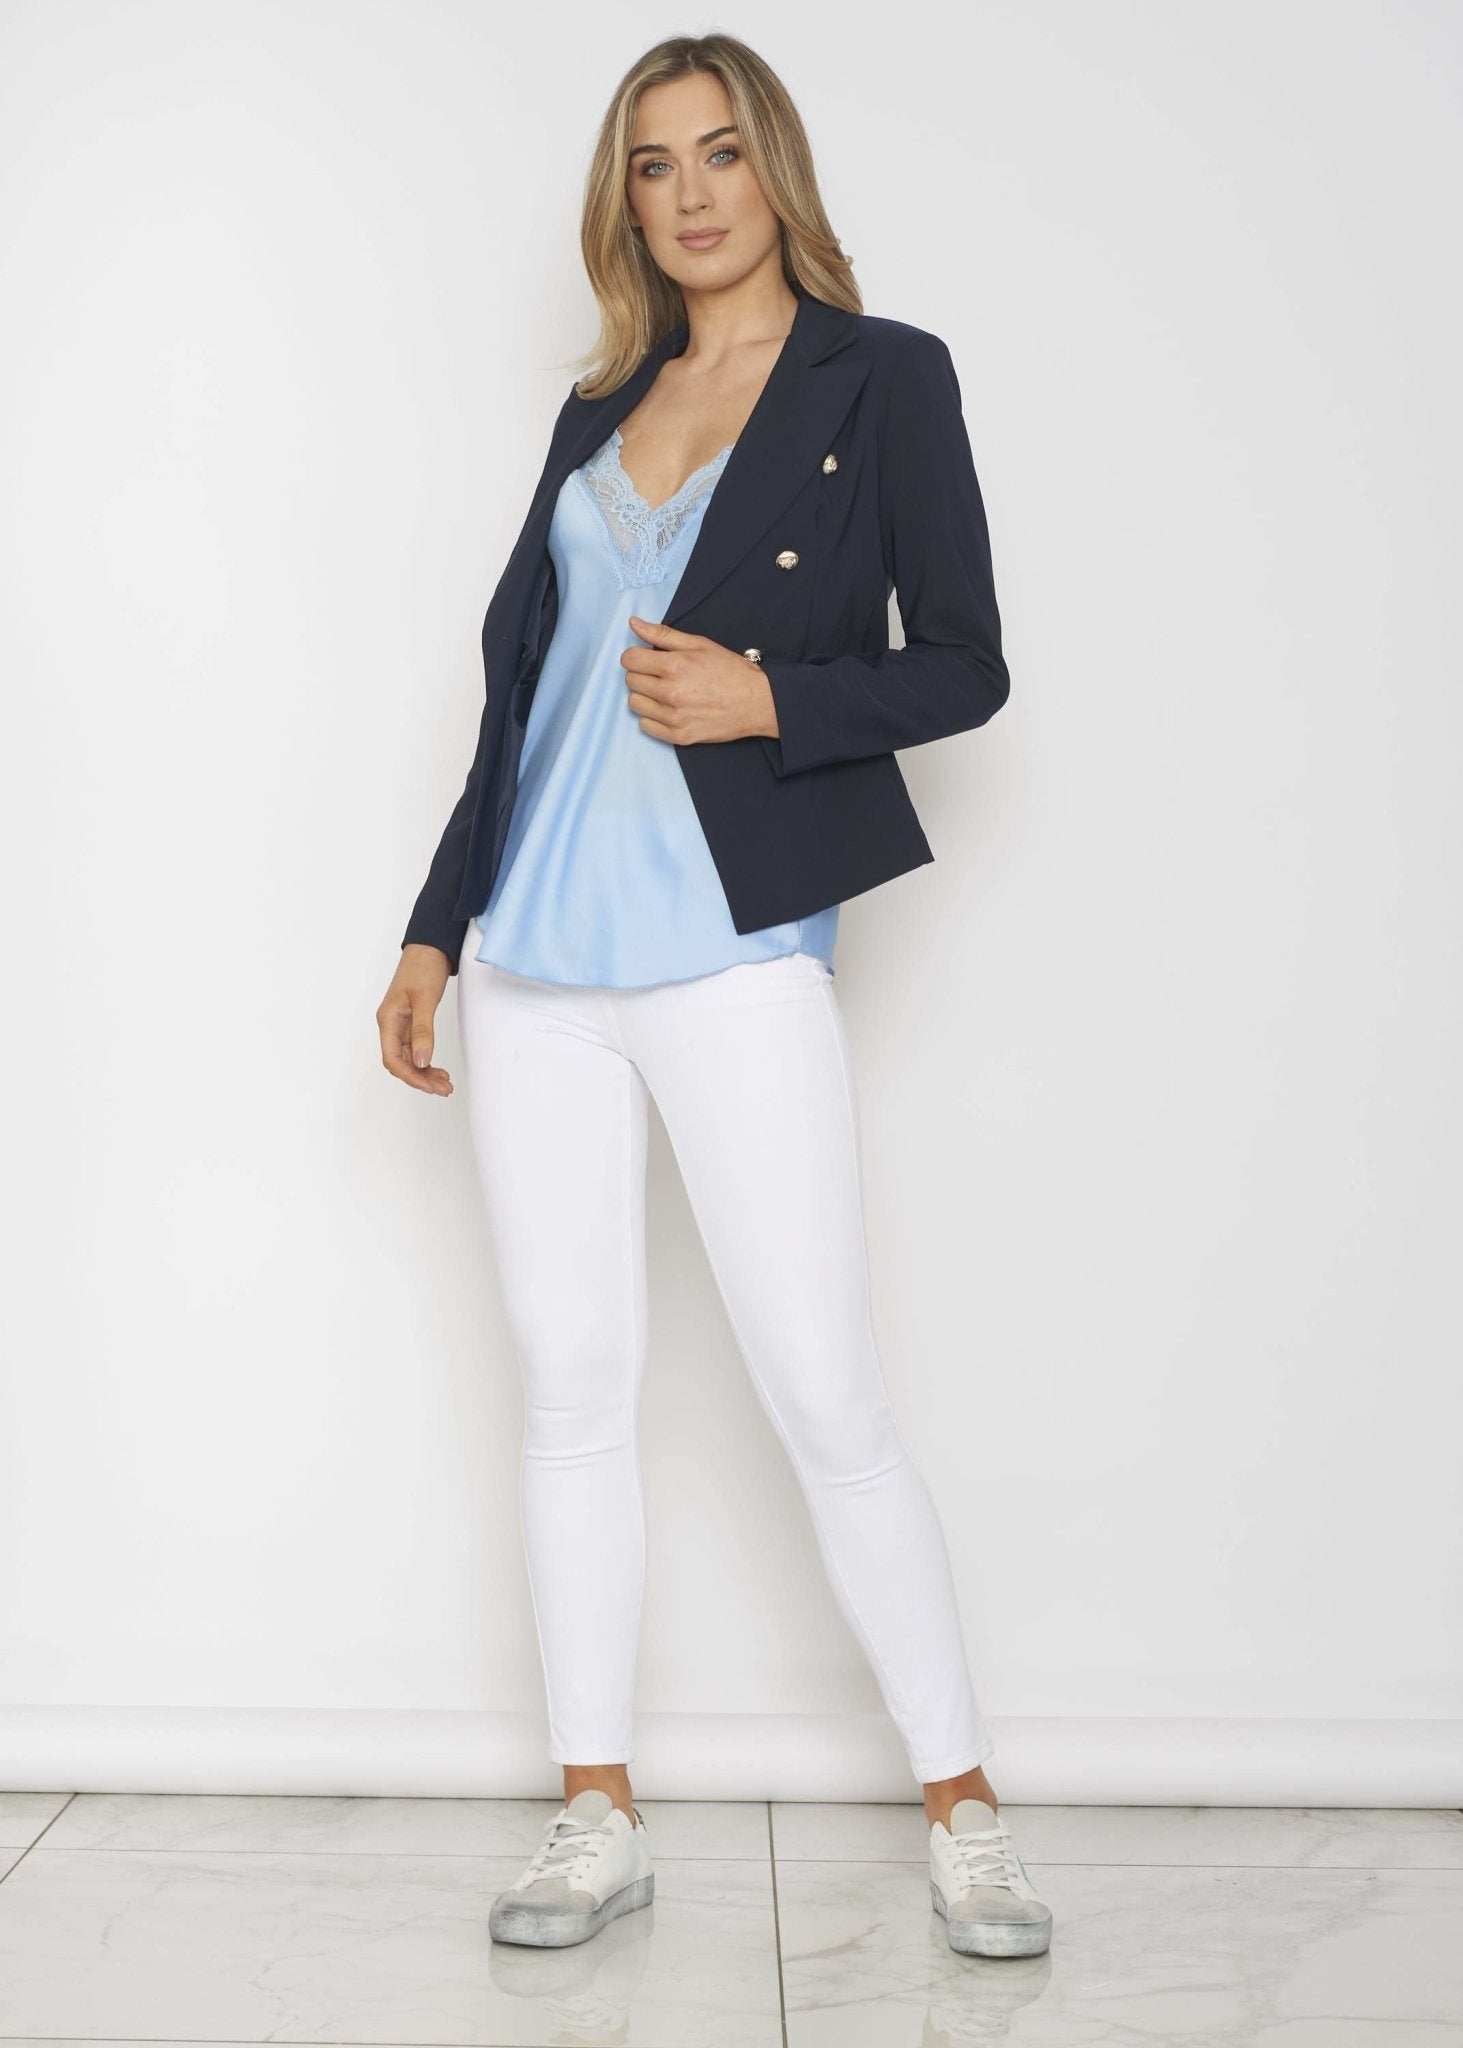 Quinn Blazer In Navy - The Walk in Wardrobe